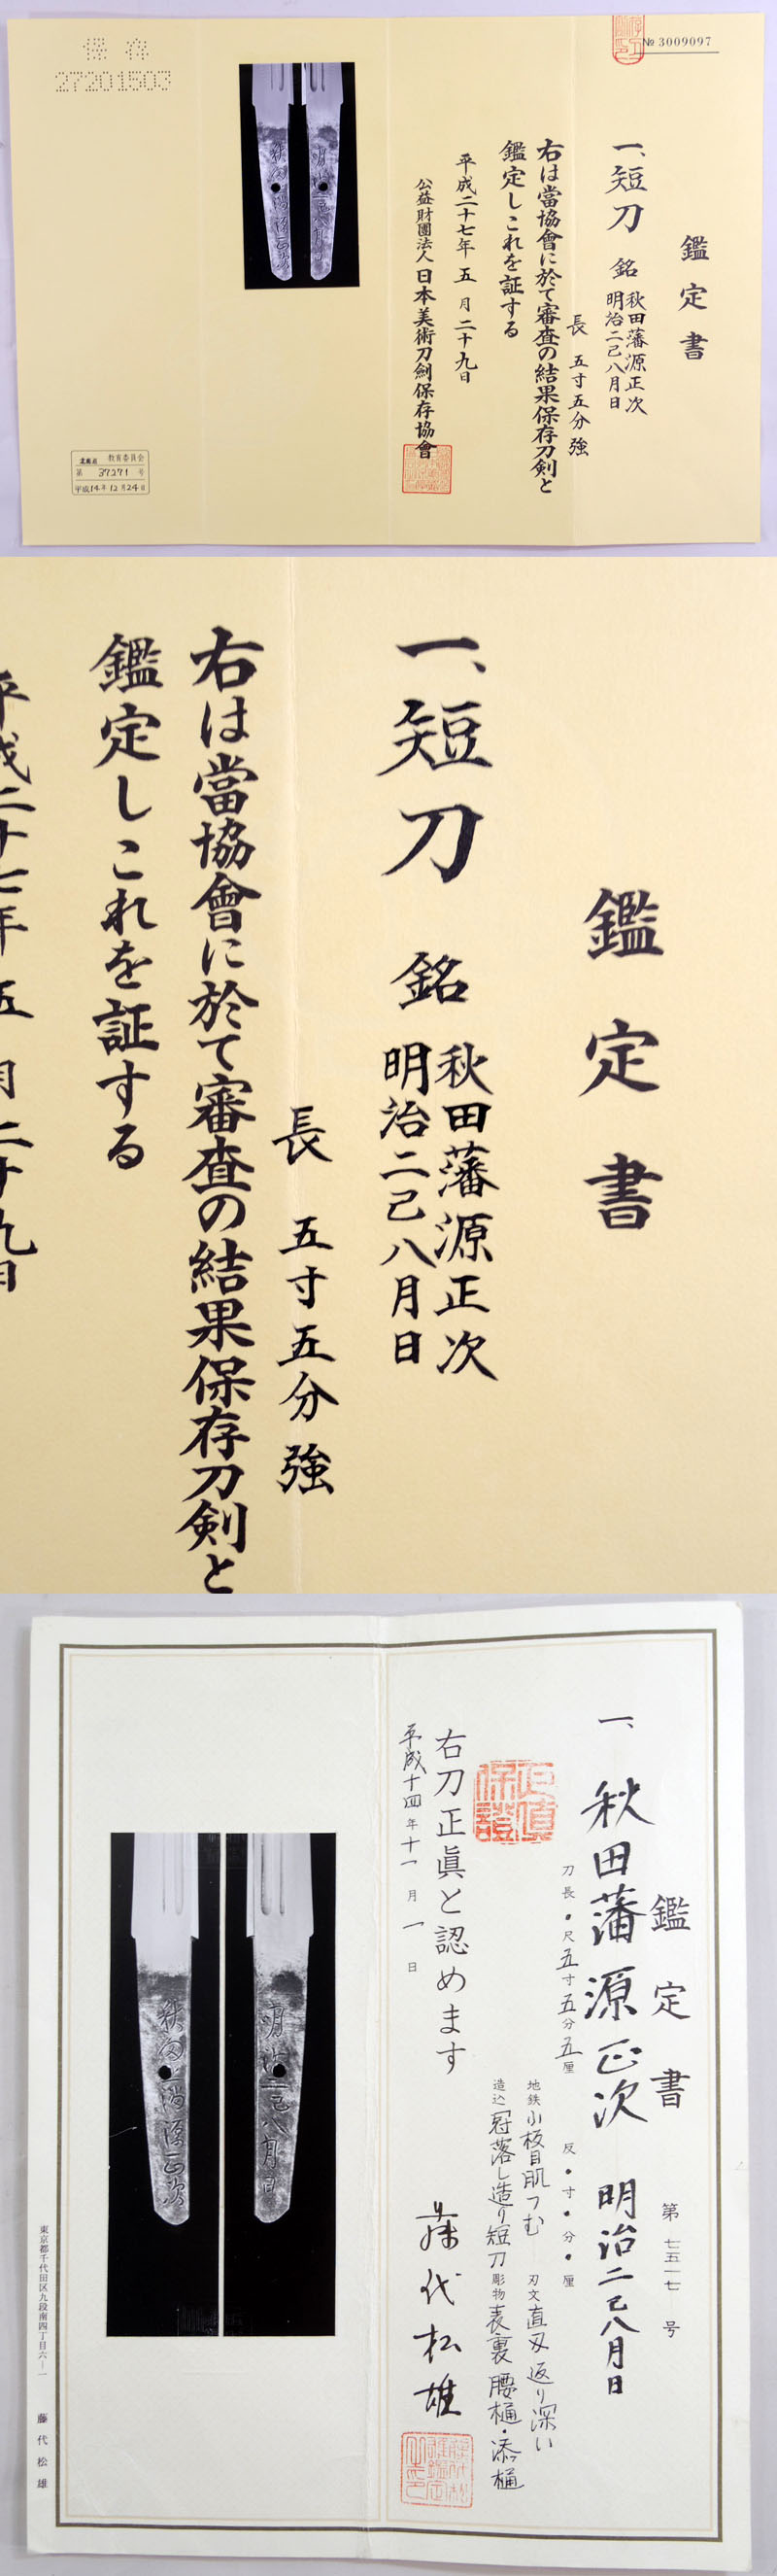 Akita藩源正次 Picture of Certificate